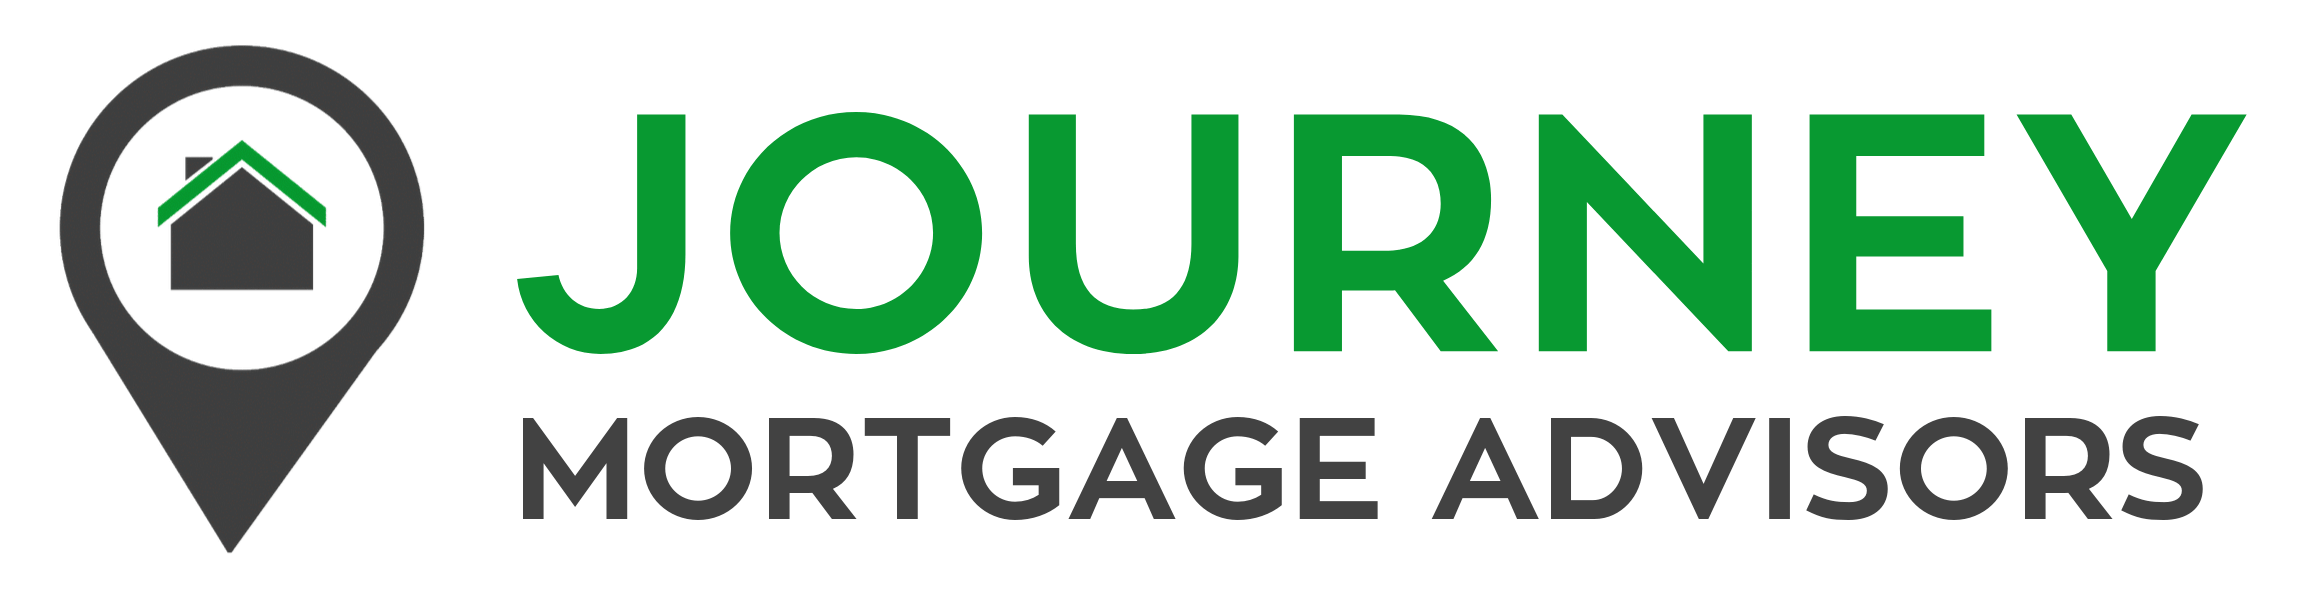 Journey Mortgage Advisors, Inc